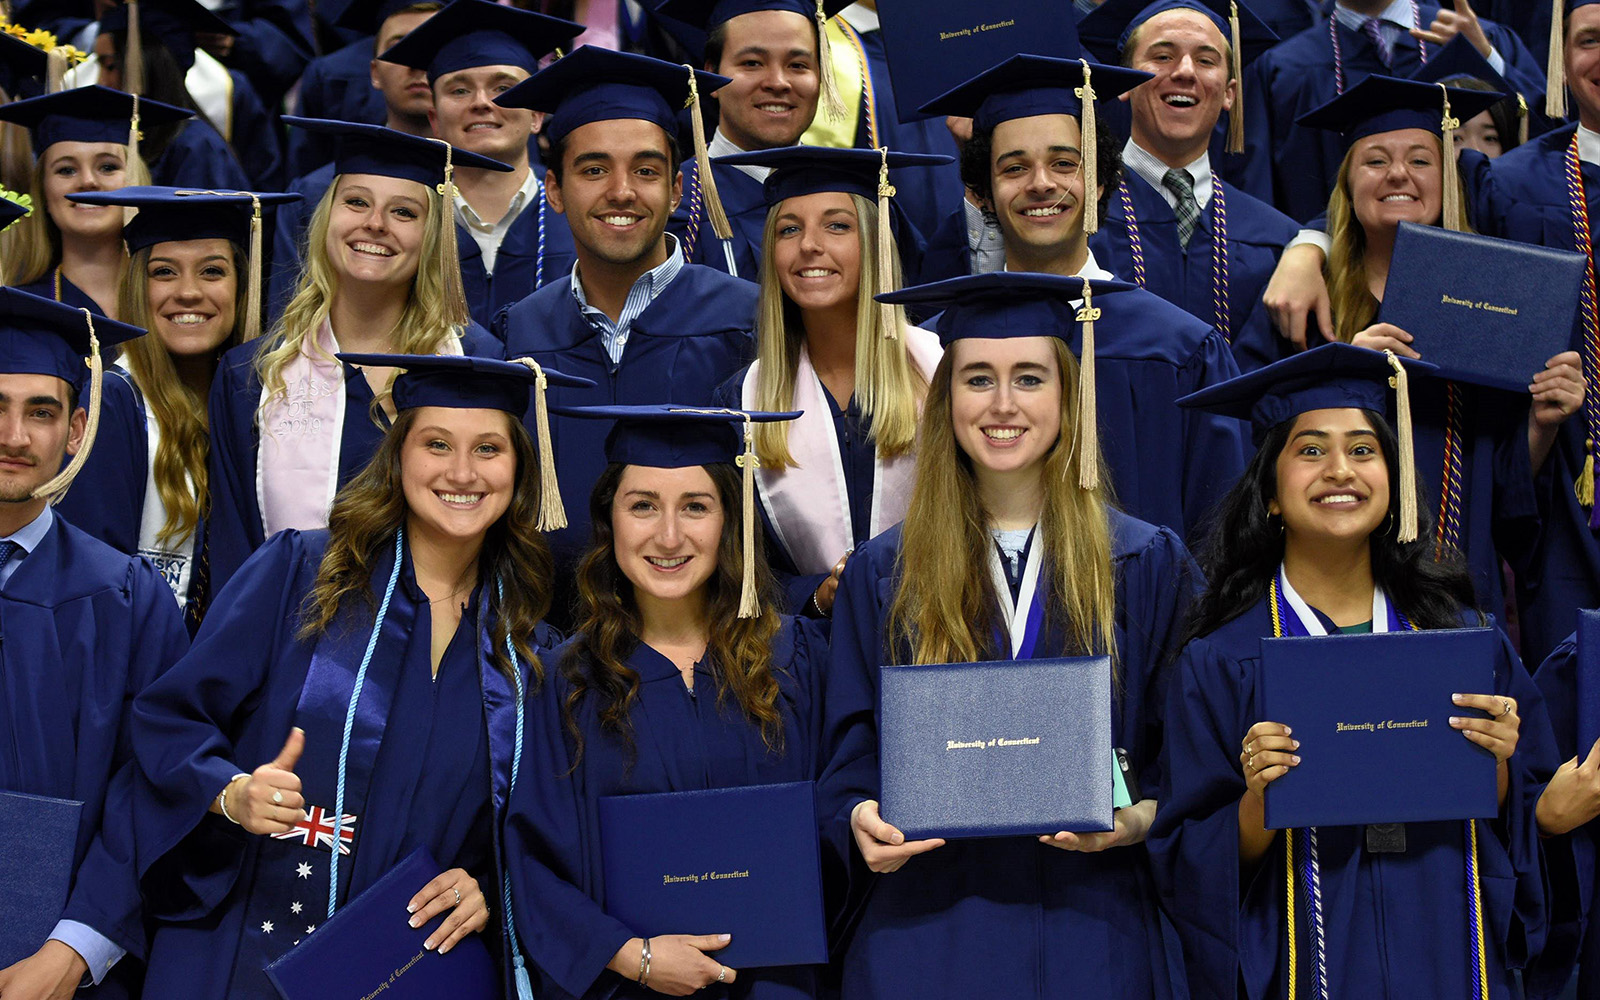 UConn School of Business Commencement 2019 (UConn School of Business)